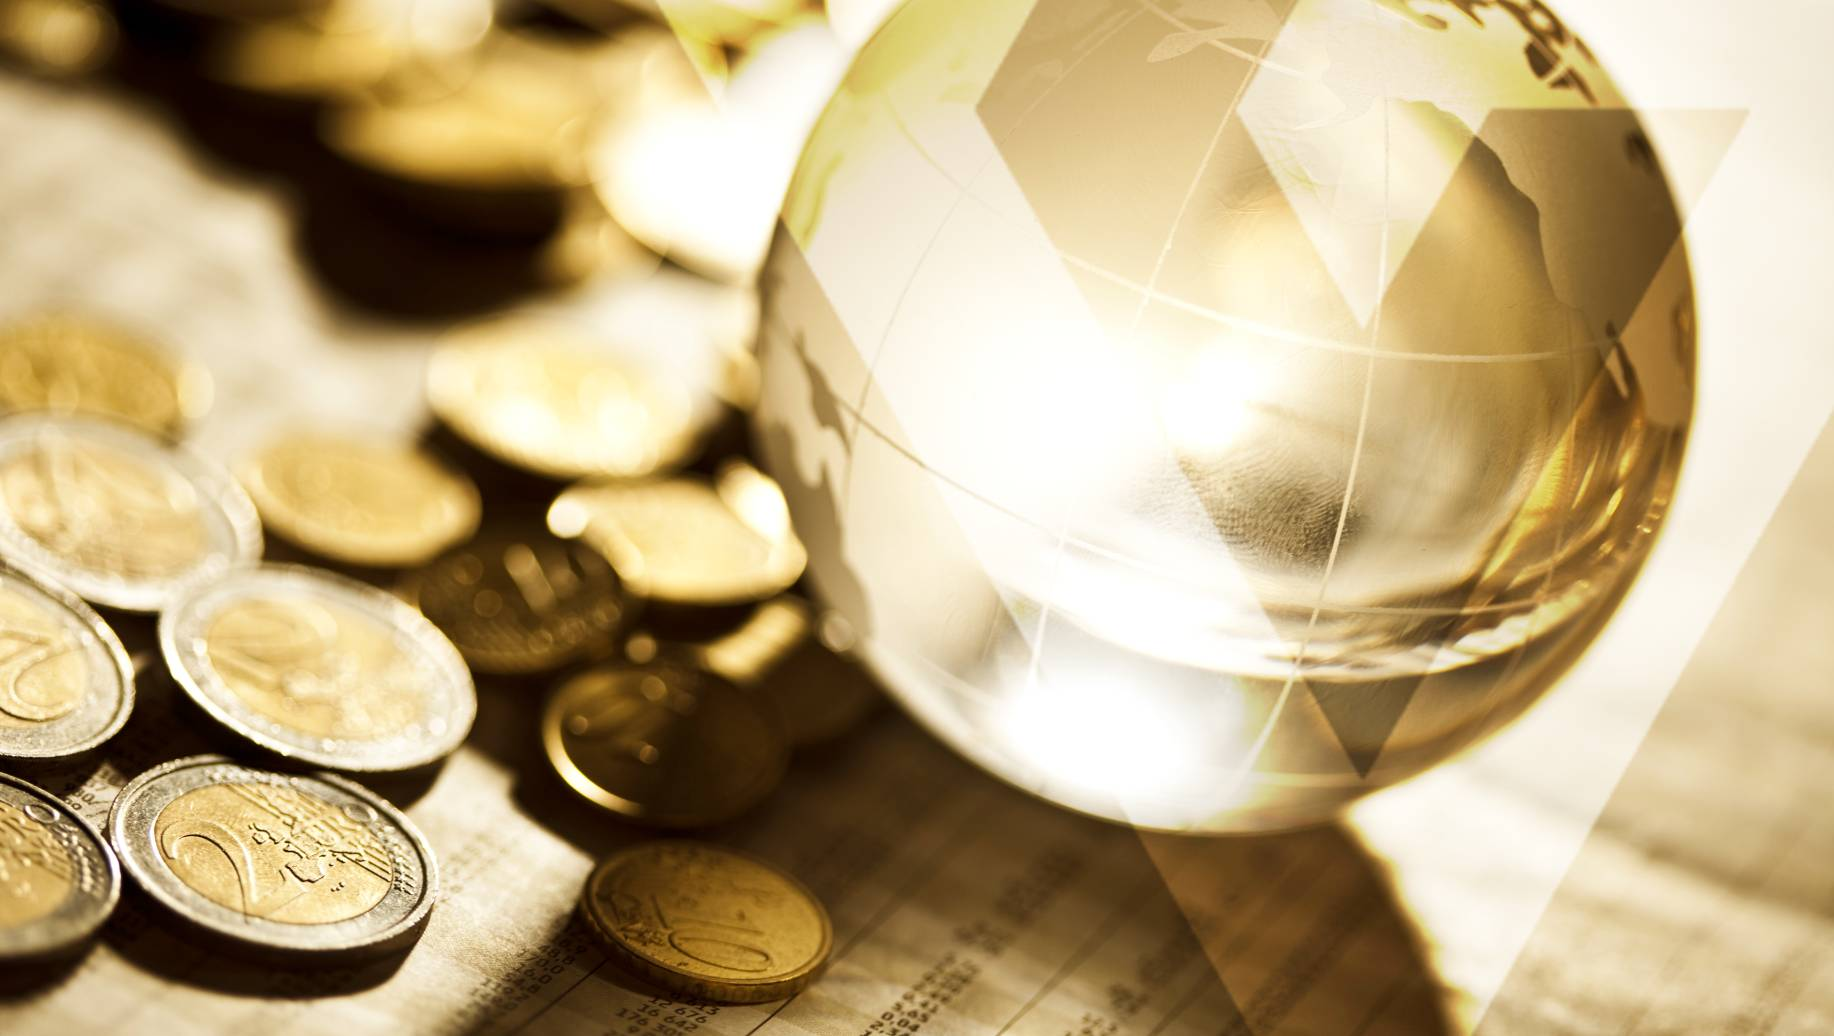 BEPS & Transfer Pricing: What Are The Effects?